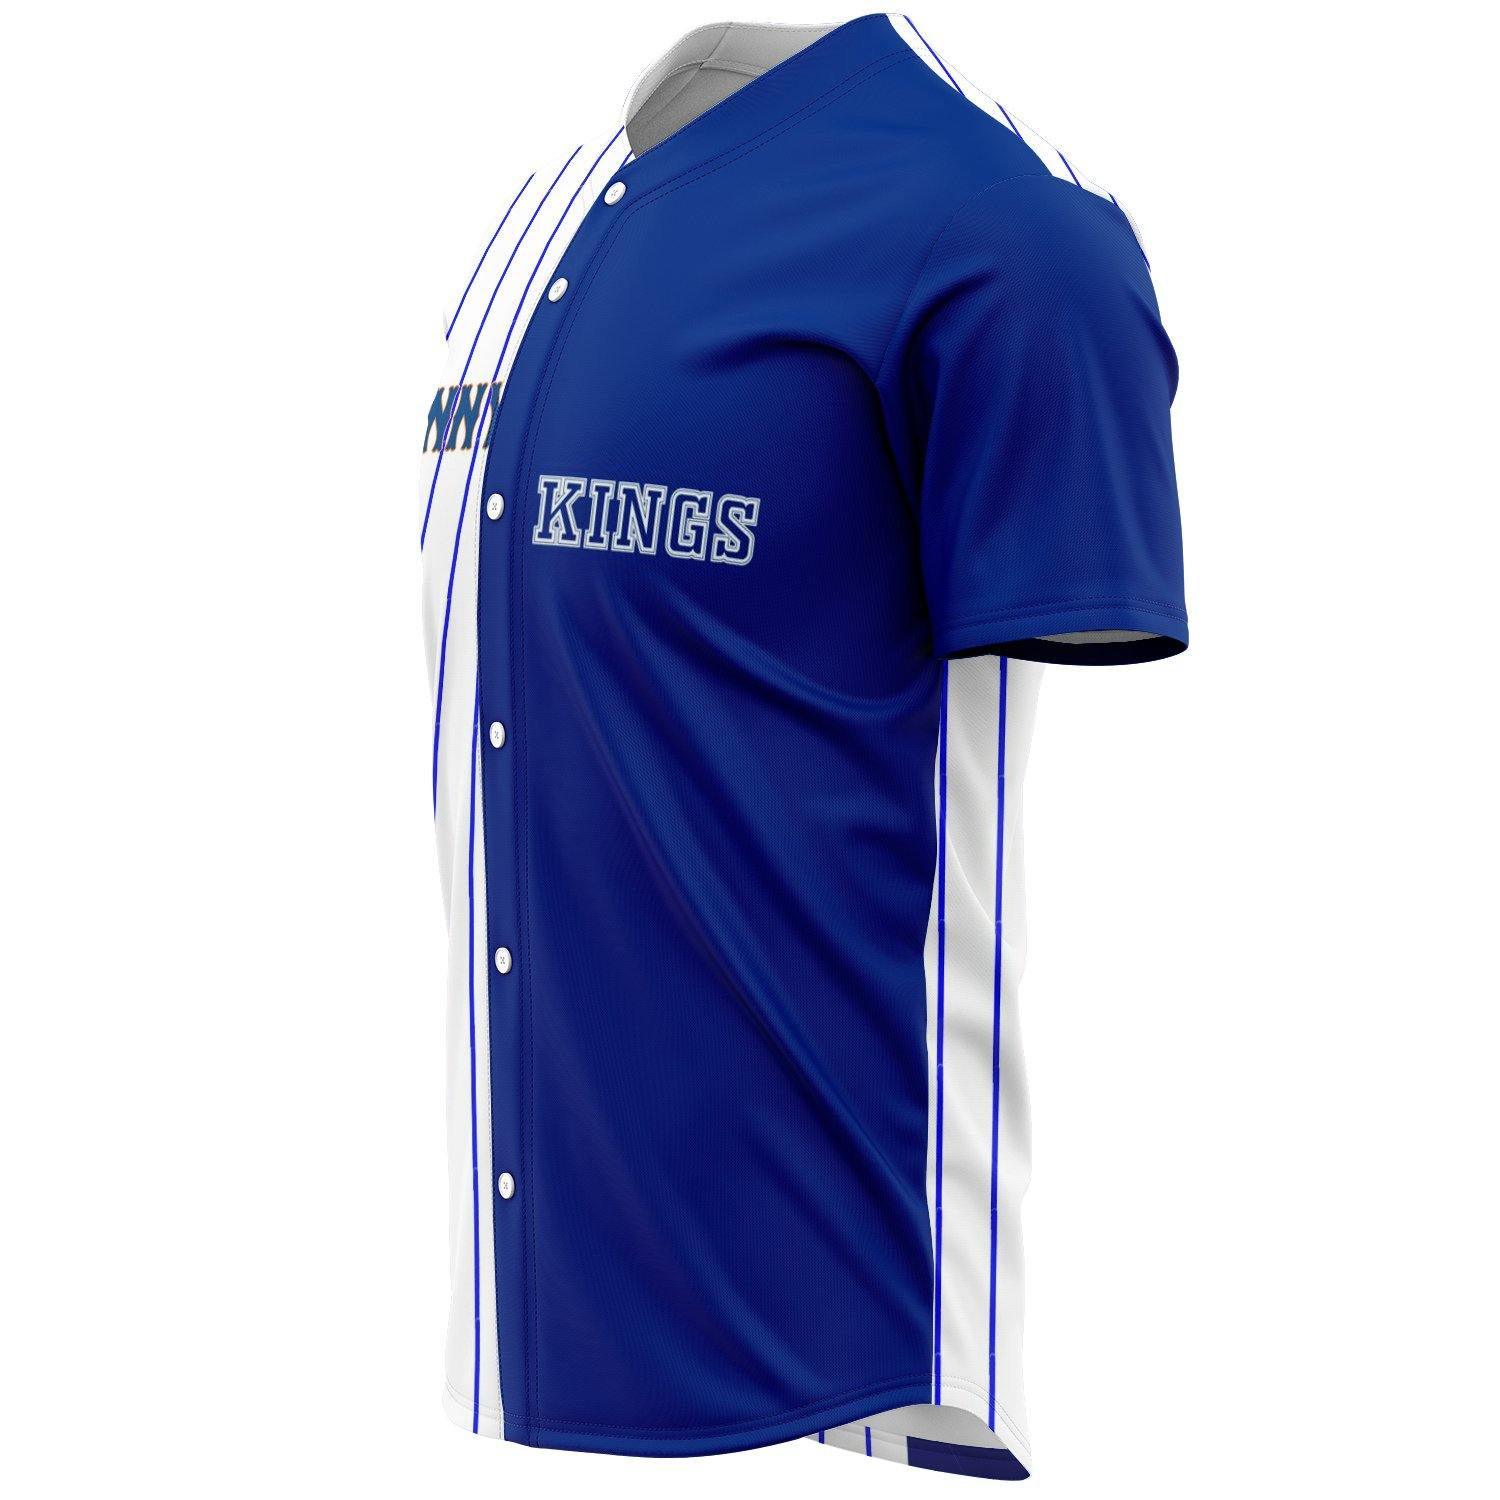 NYC RIVALS JERSEY